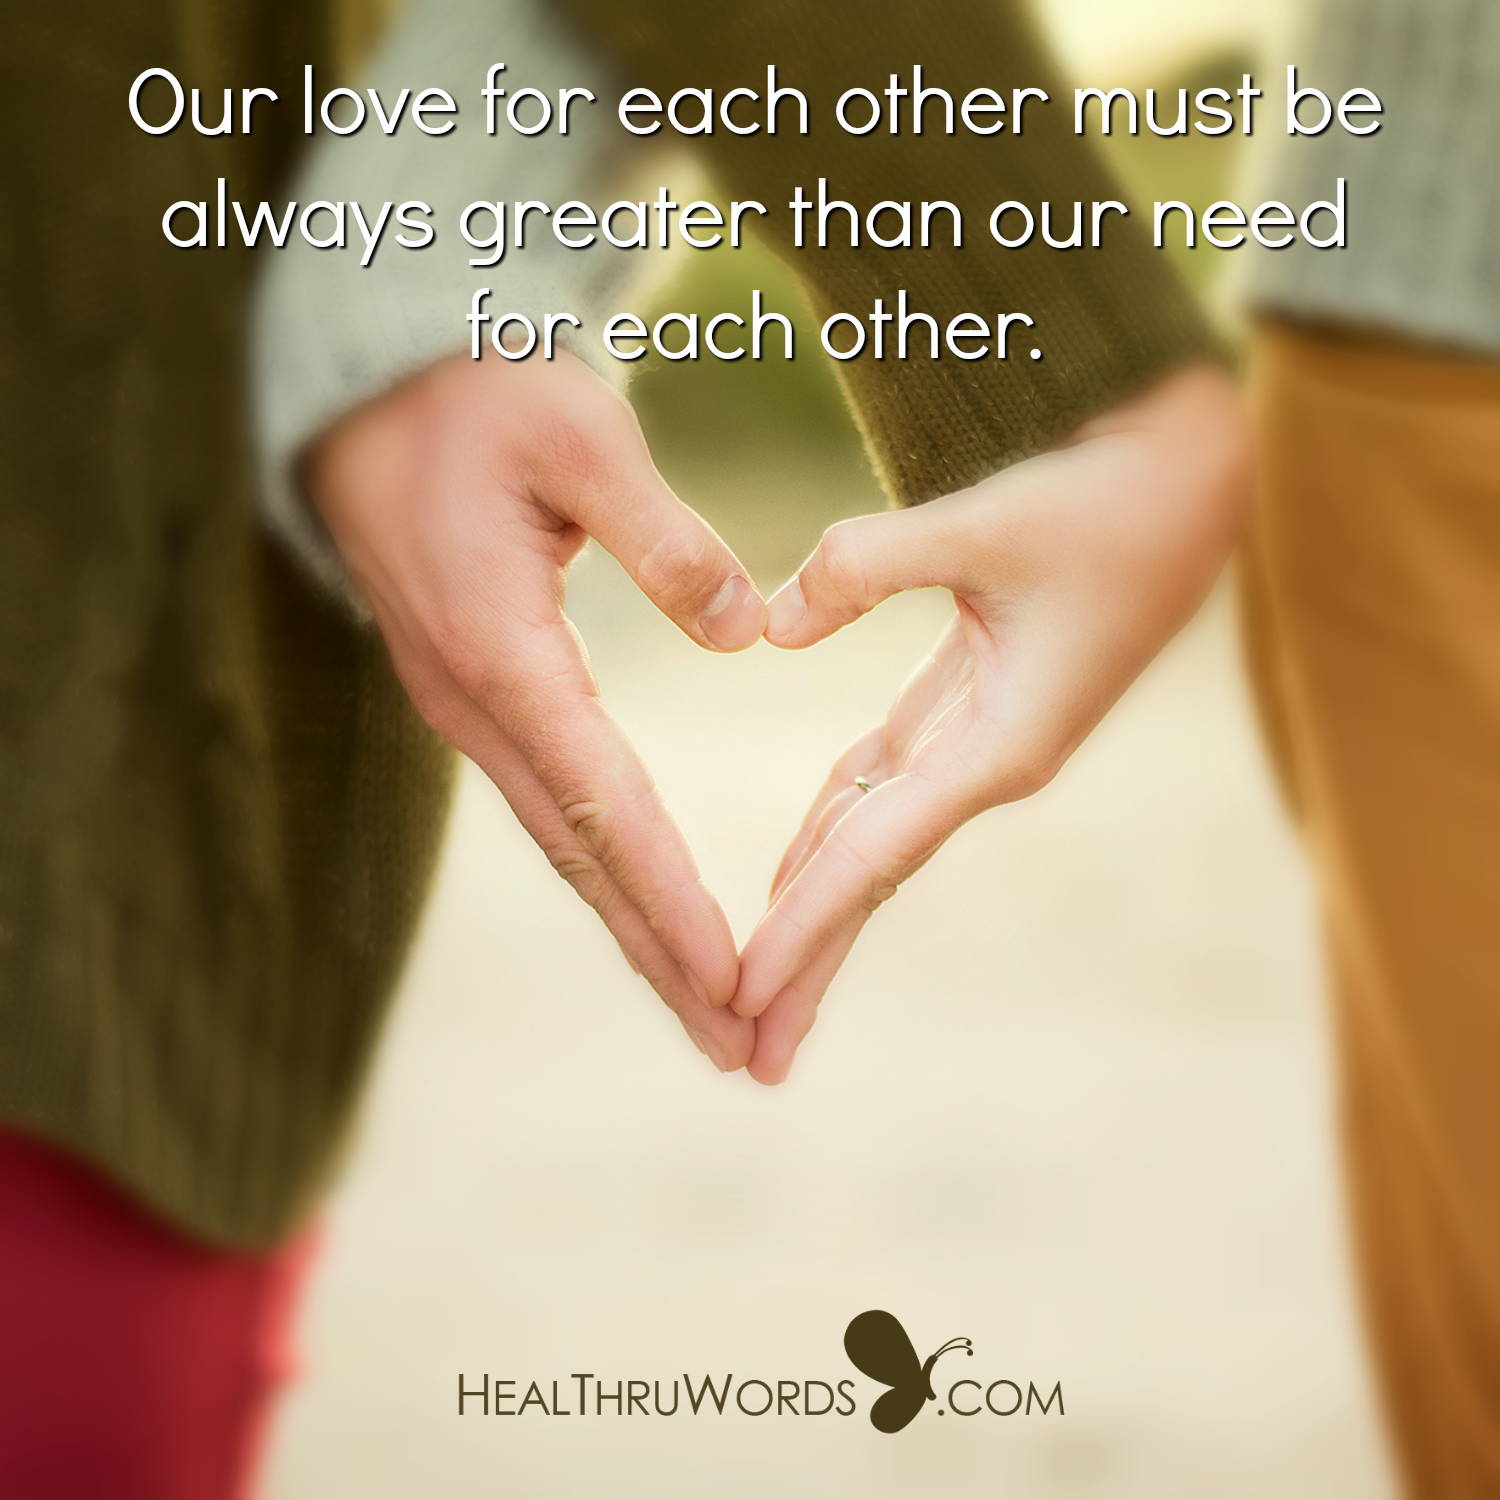 Inspirational Image: Love Over Need